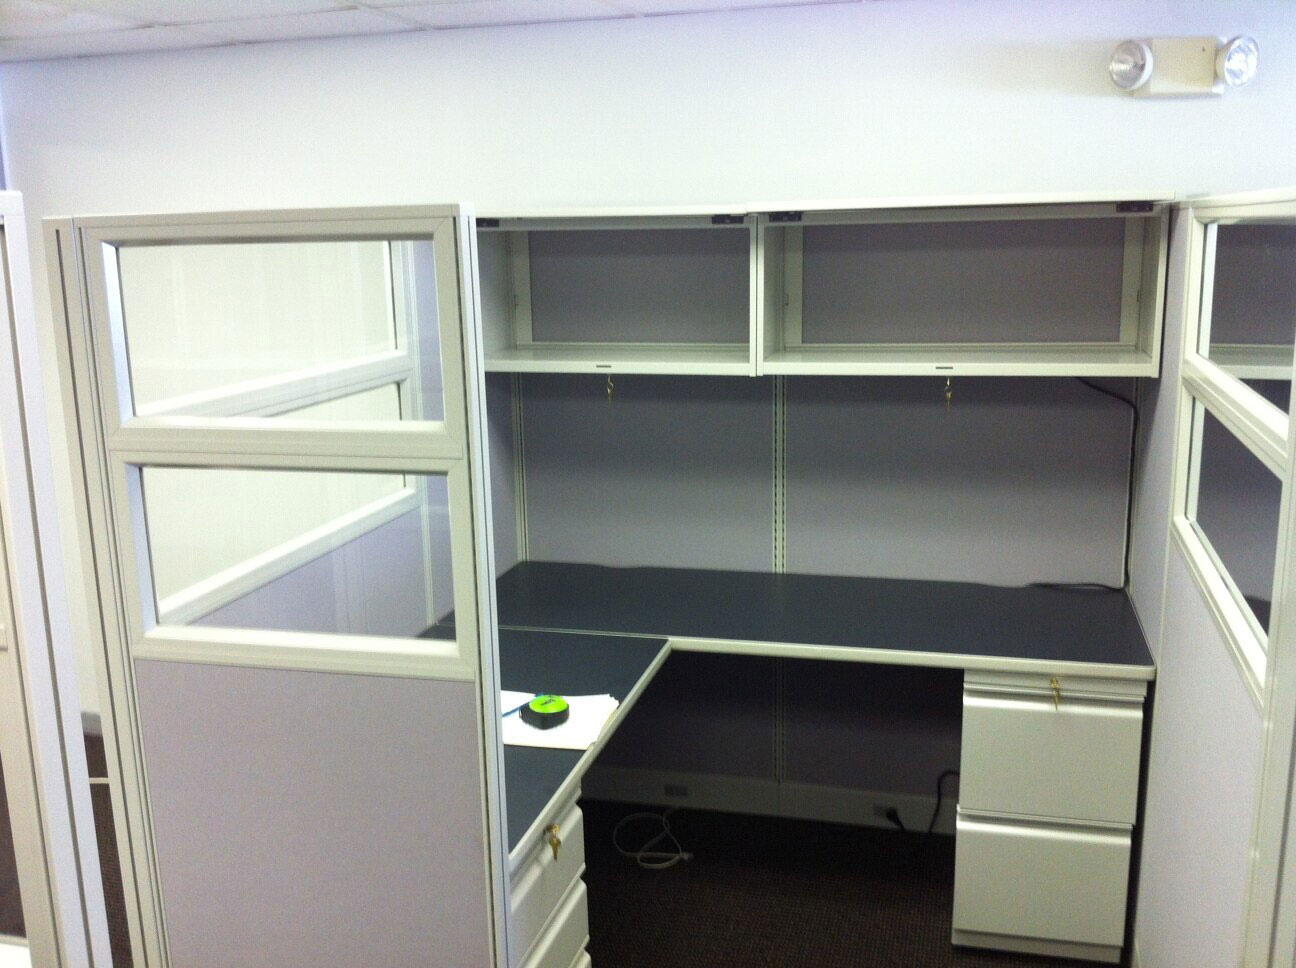 office-cubicles-for-sale-in-avon-park-florida-3-1.jpg